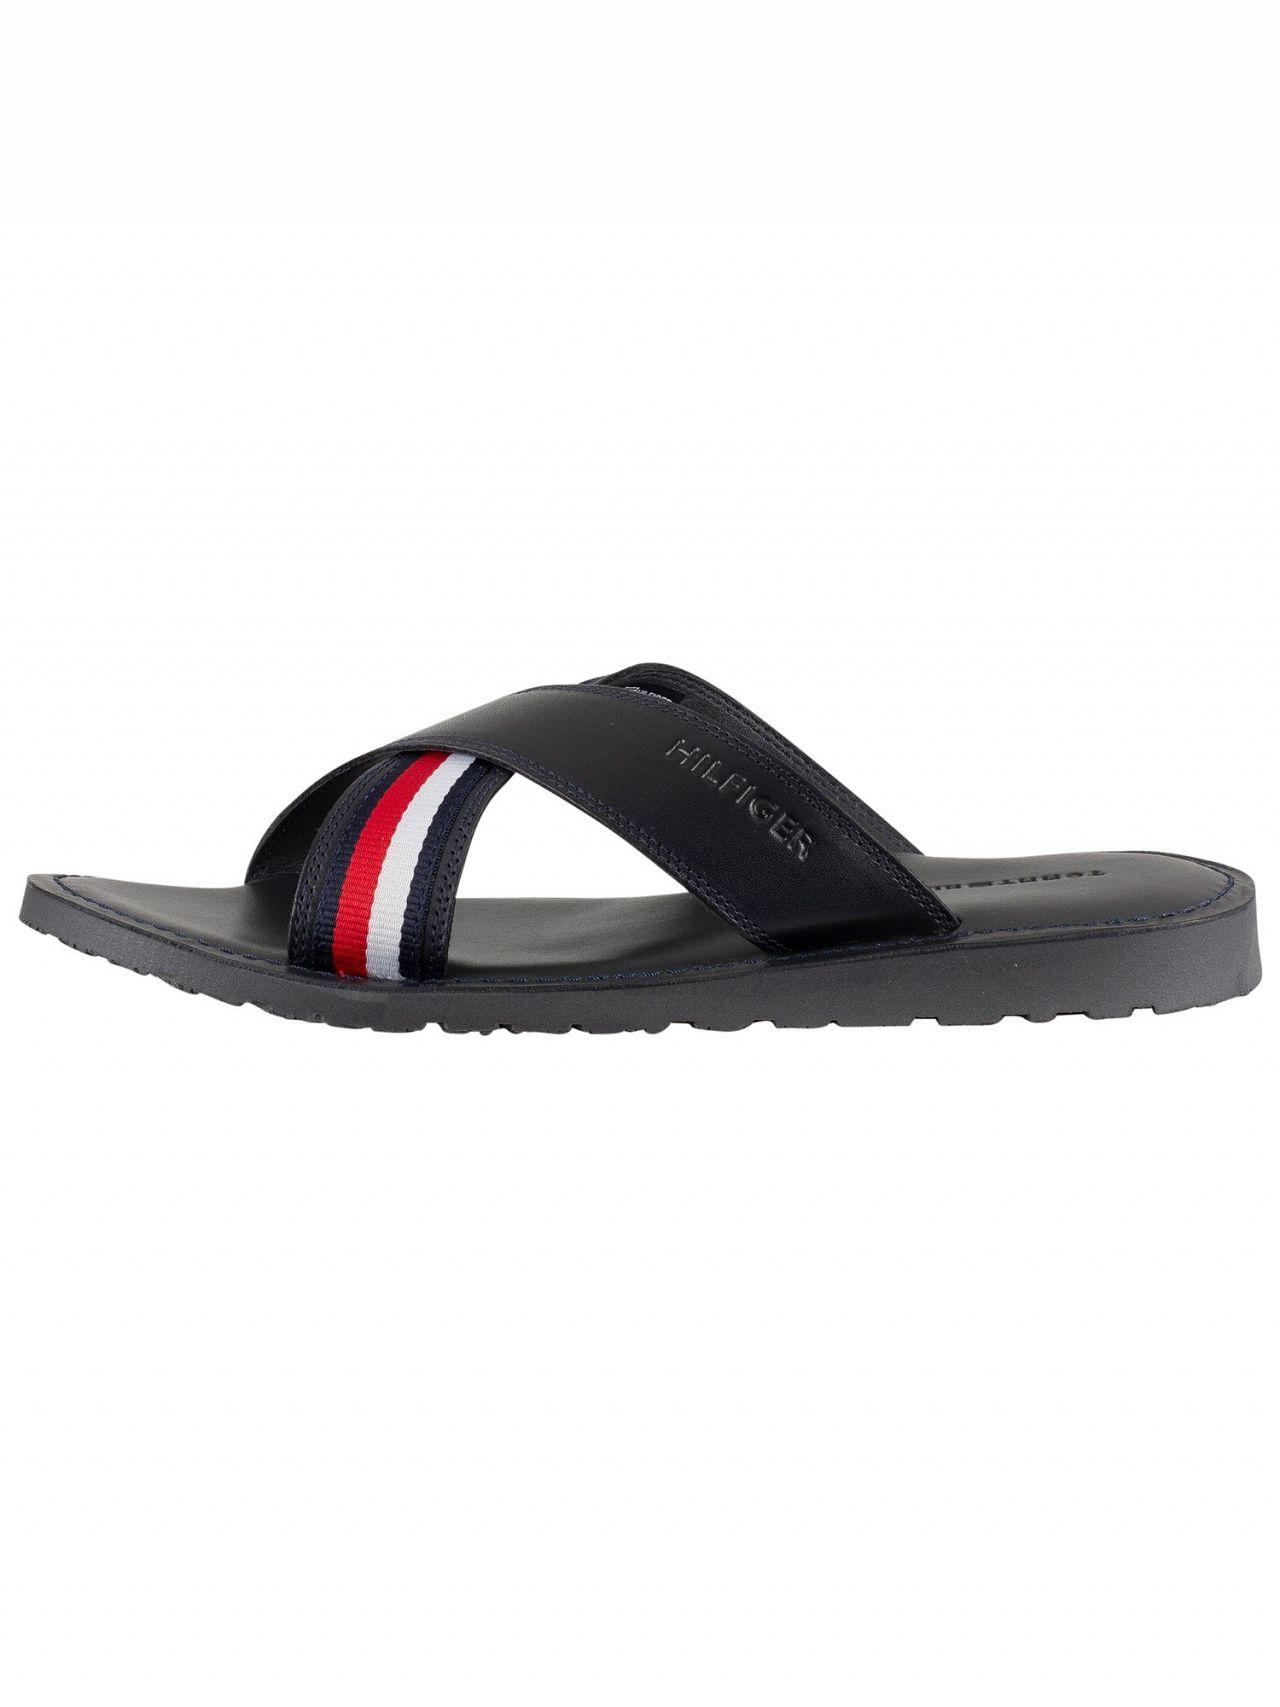 652169c3c Lyst - Tommy Hilfiger Midnight Criss Cross Leather Sandals in Blue for Men